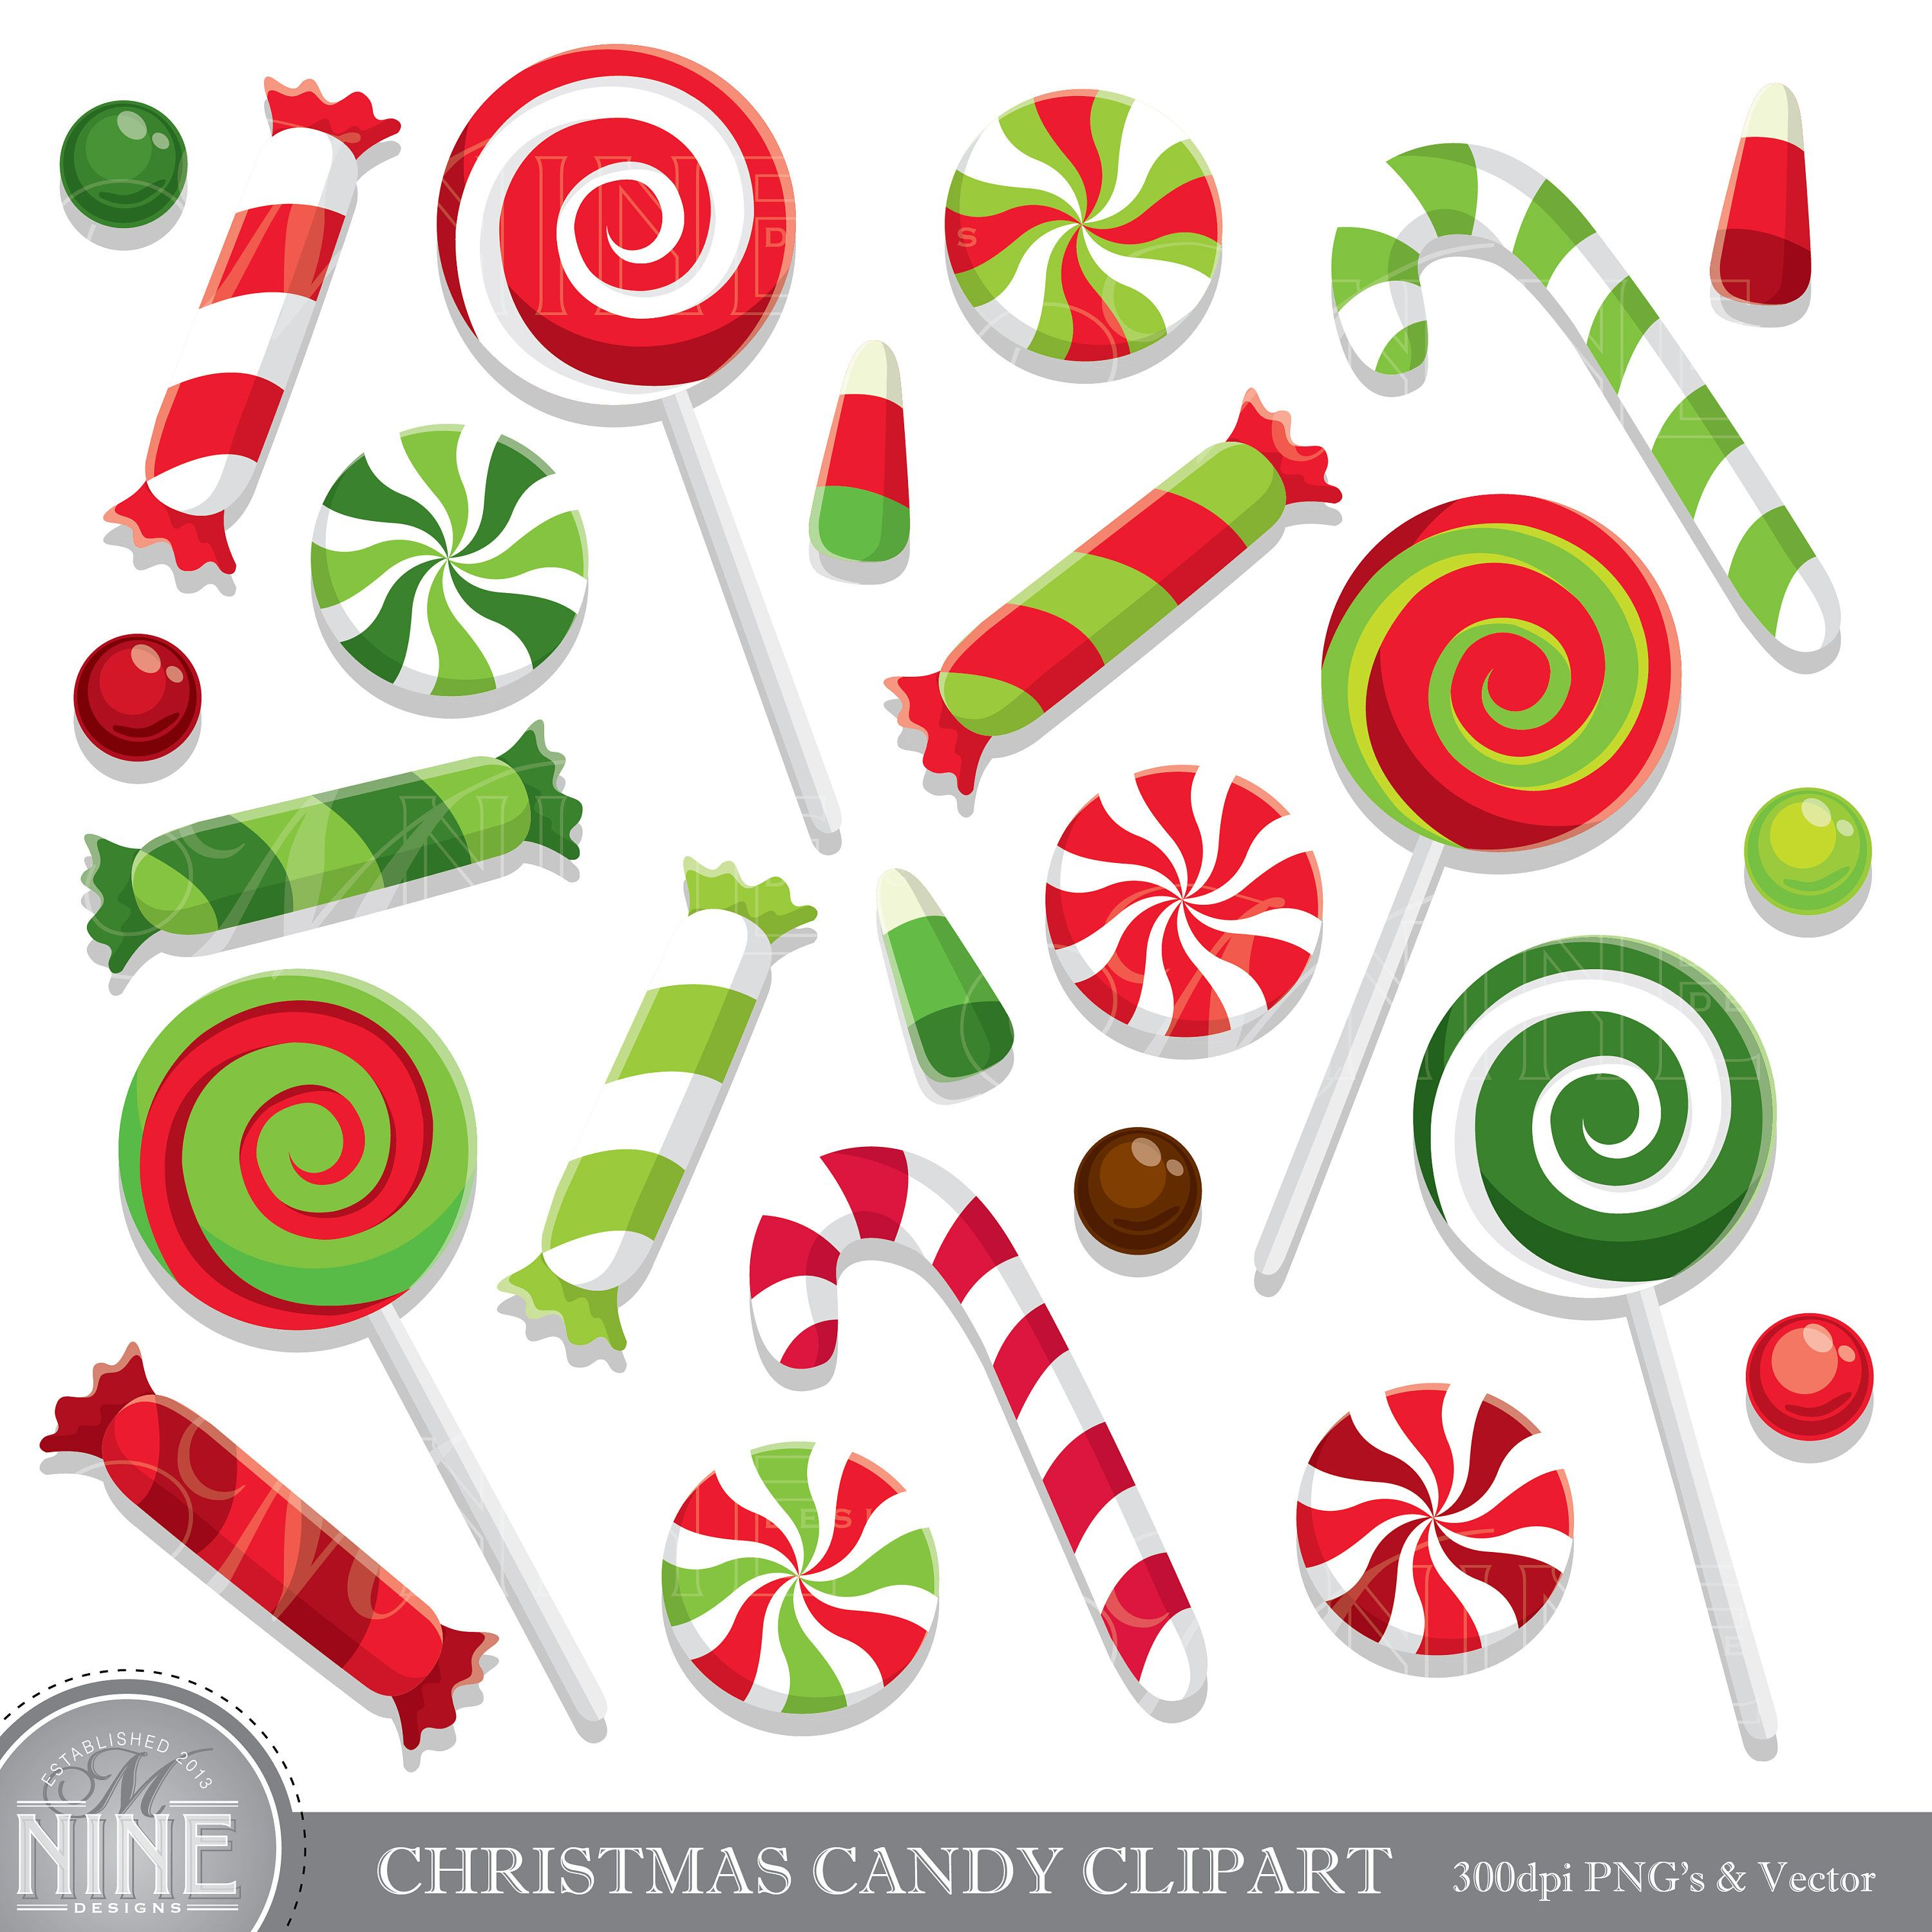 Christmas Candyland Clipart.Candyland Clipart Hard Candy Candyland Hard Candy